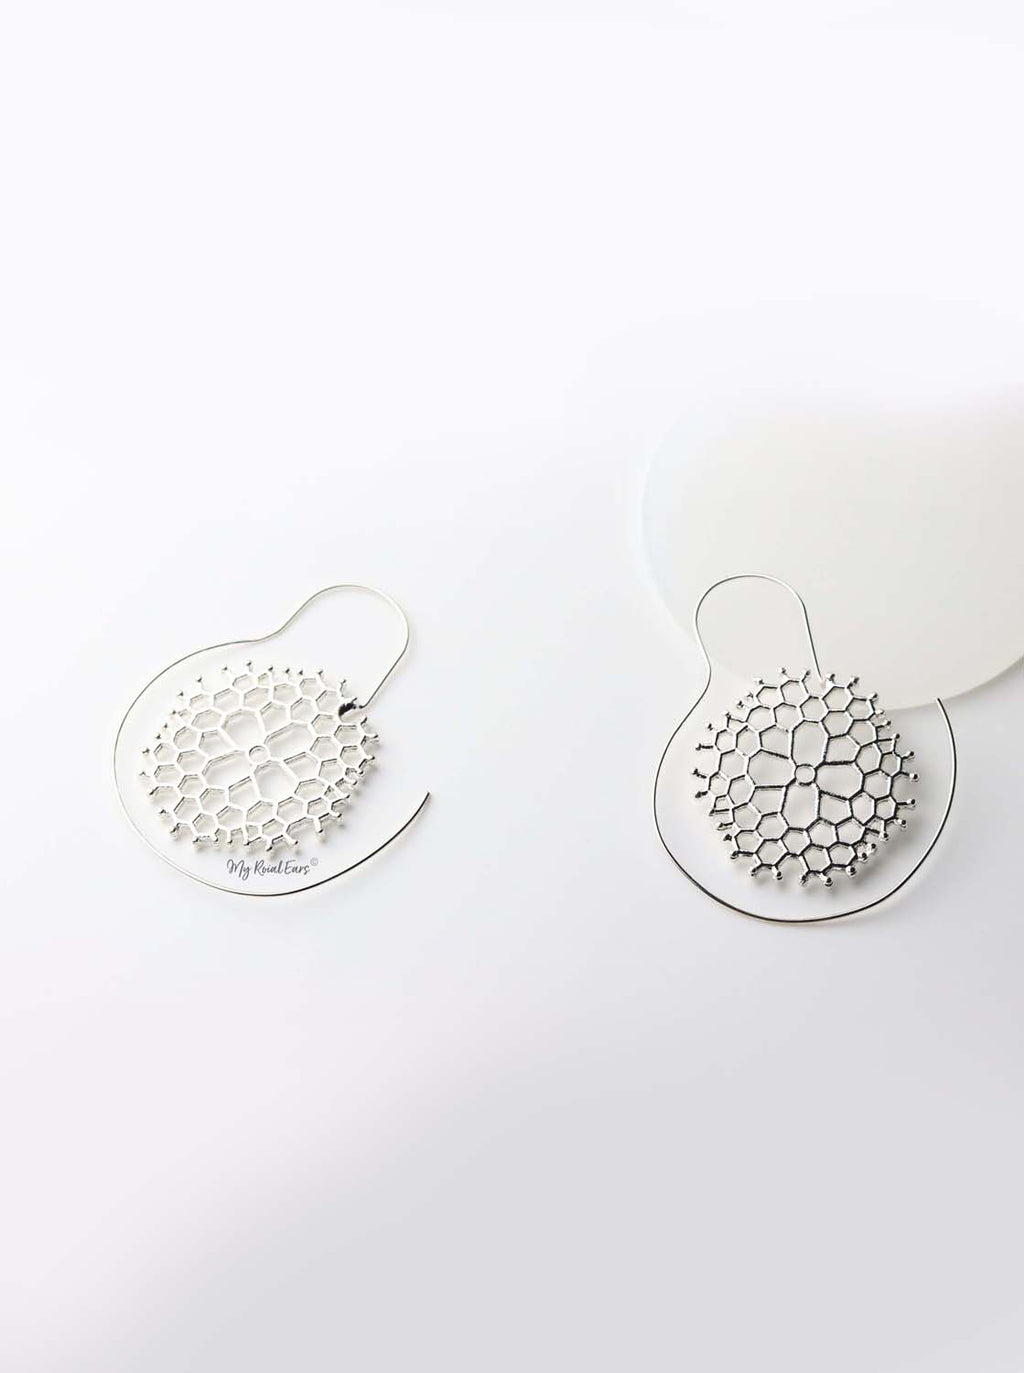 Danae Silver- round spiral plant inspired earrings - My Roial Ears LTD